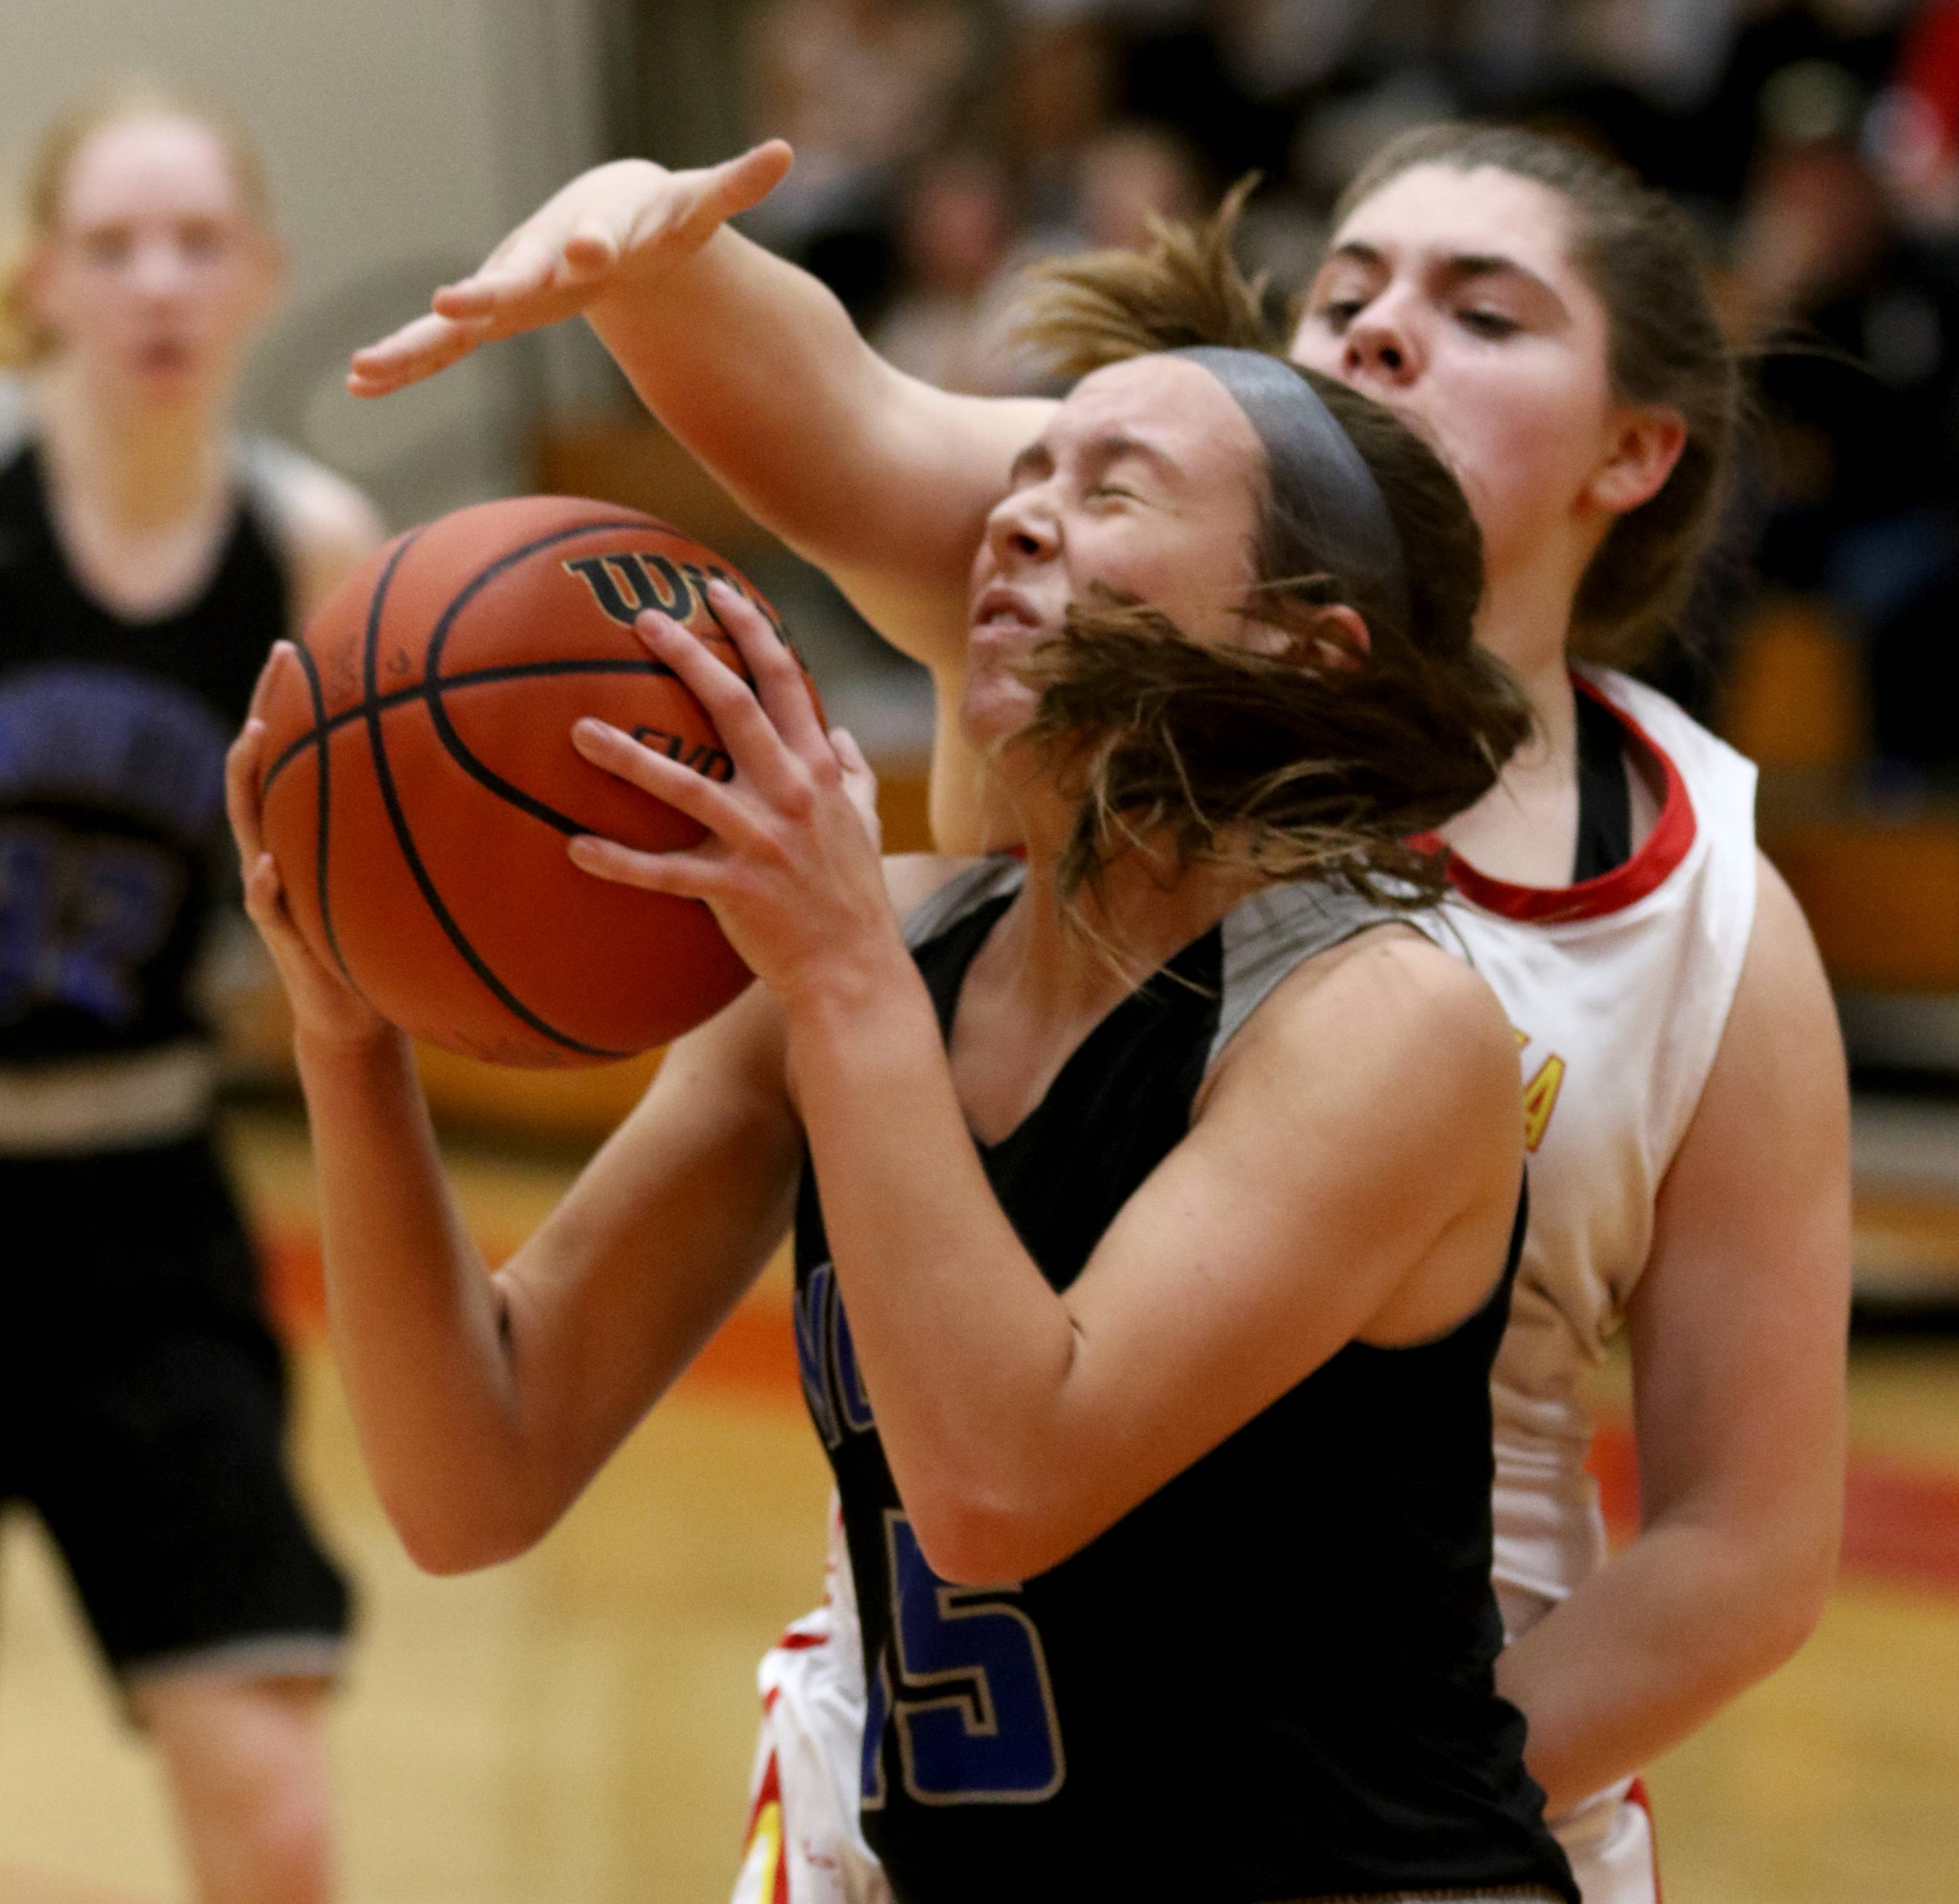 Batavia's Claire Nazos, back guards St. Charles North's Makenna Collins under the hoop during varsity girls basketball at Batavia Thursday night.